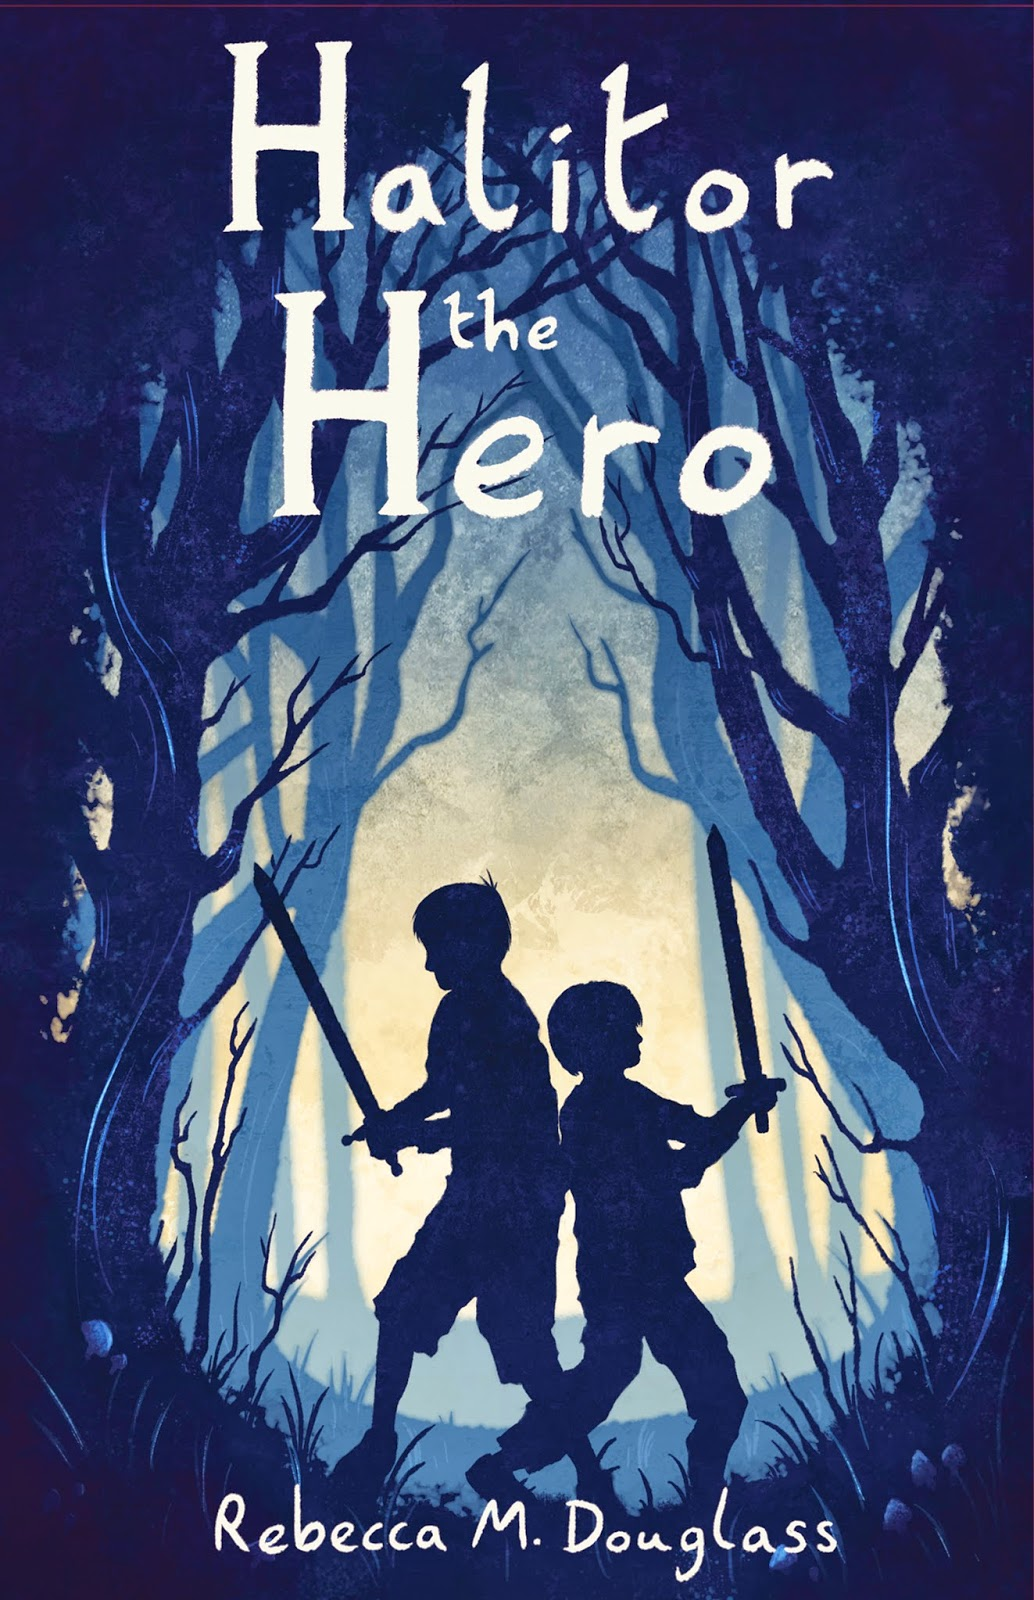 http://www.amazon.com/Halitor-Hero-Rebecca-M-Douglass-ebook/dp/B00O7WX8Q0/ref=sr_1_1?ie=UTF8&qid=1414966997&sr=8-1&keywords=halitor+the+hero